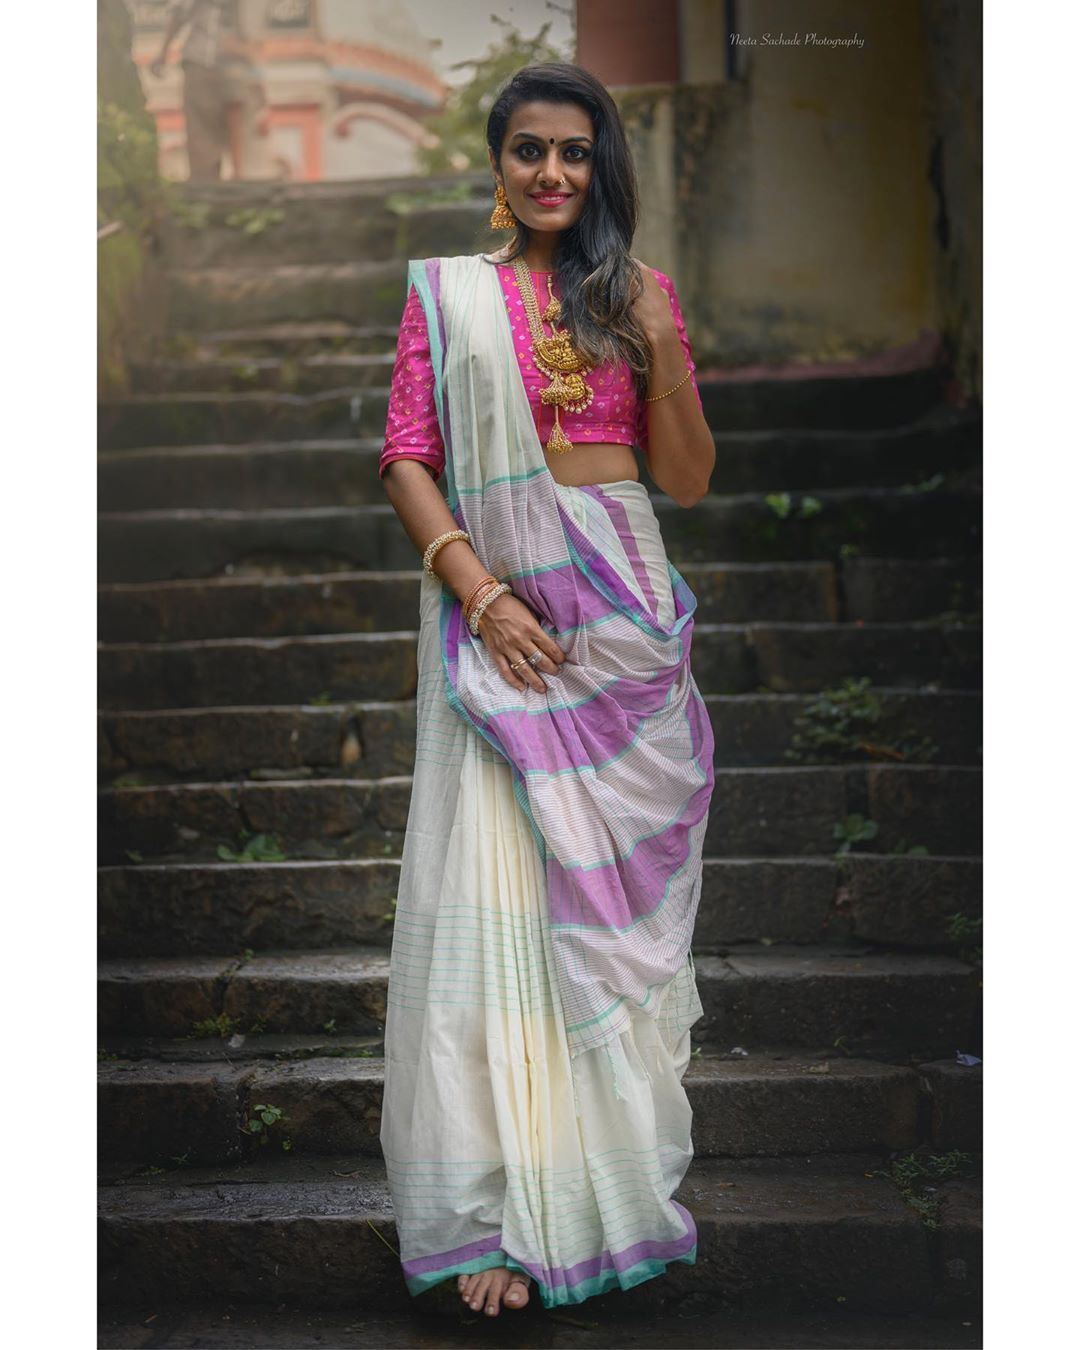 styling-sarees-tips-15